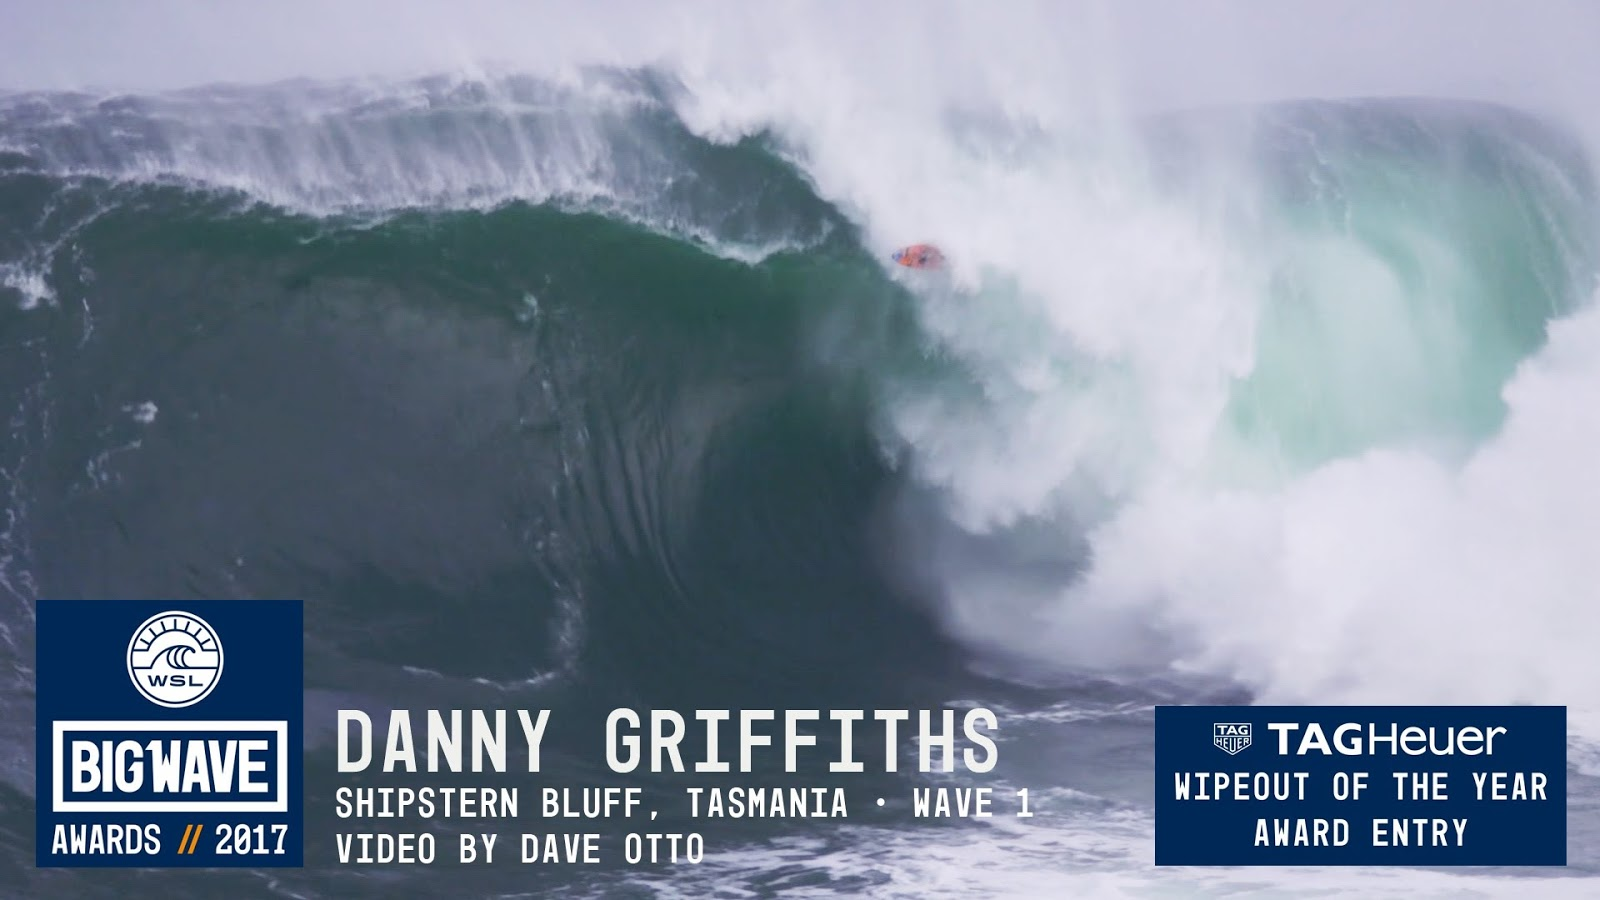 Danny Griffiths at Shipstern Bluff - 2017 TAG Heuer WIpeout of the Year Entry - WSL Big Wave Awards